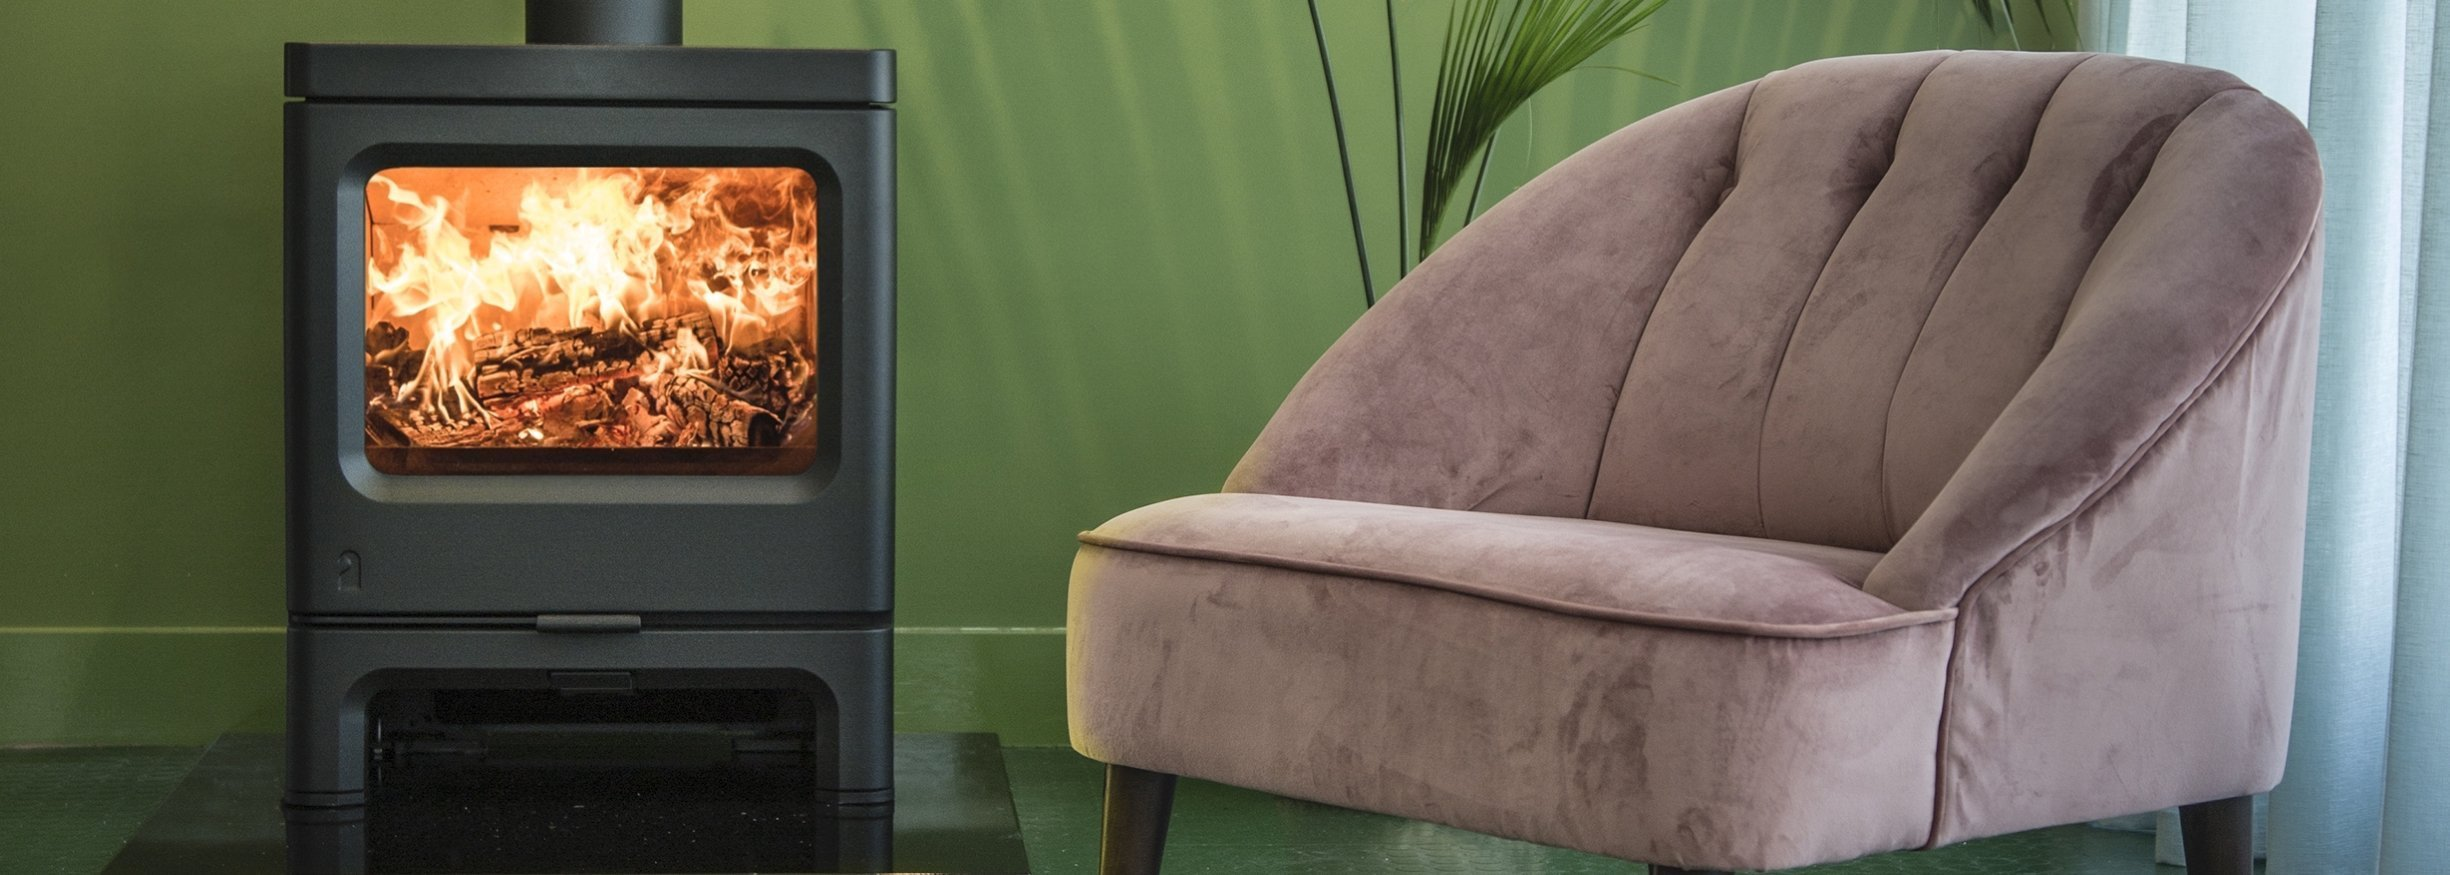 Charnwood Stoves Special Offer